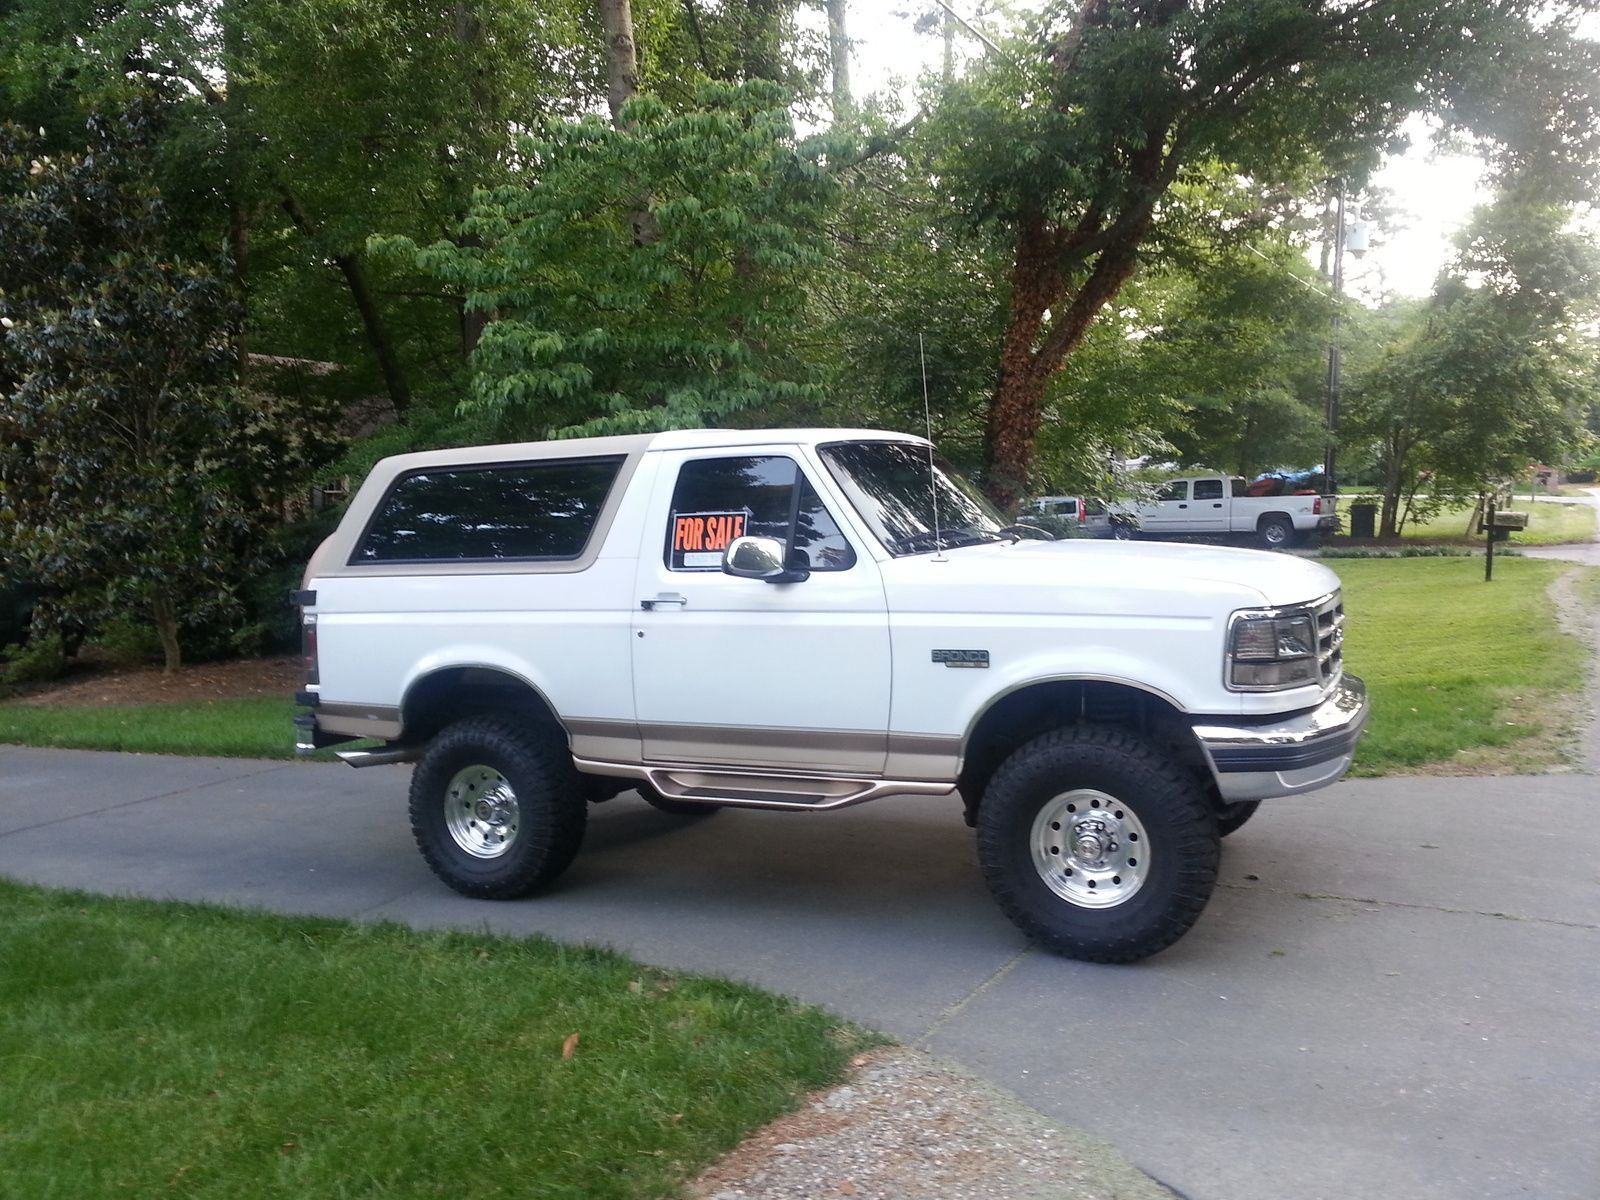 1996 Ford Bronco Ford Bronco Lifted Ford Trucks Ford Bronco 1996